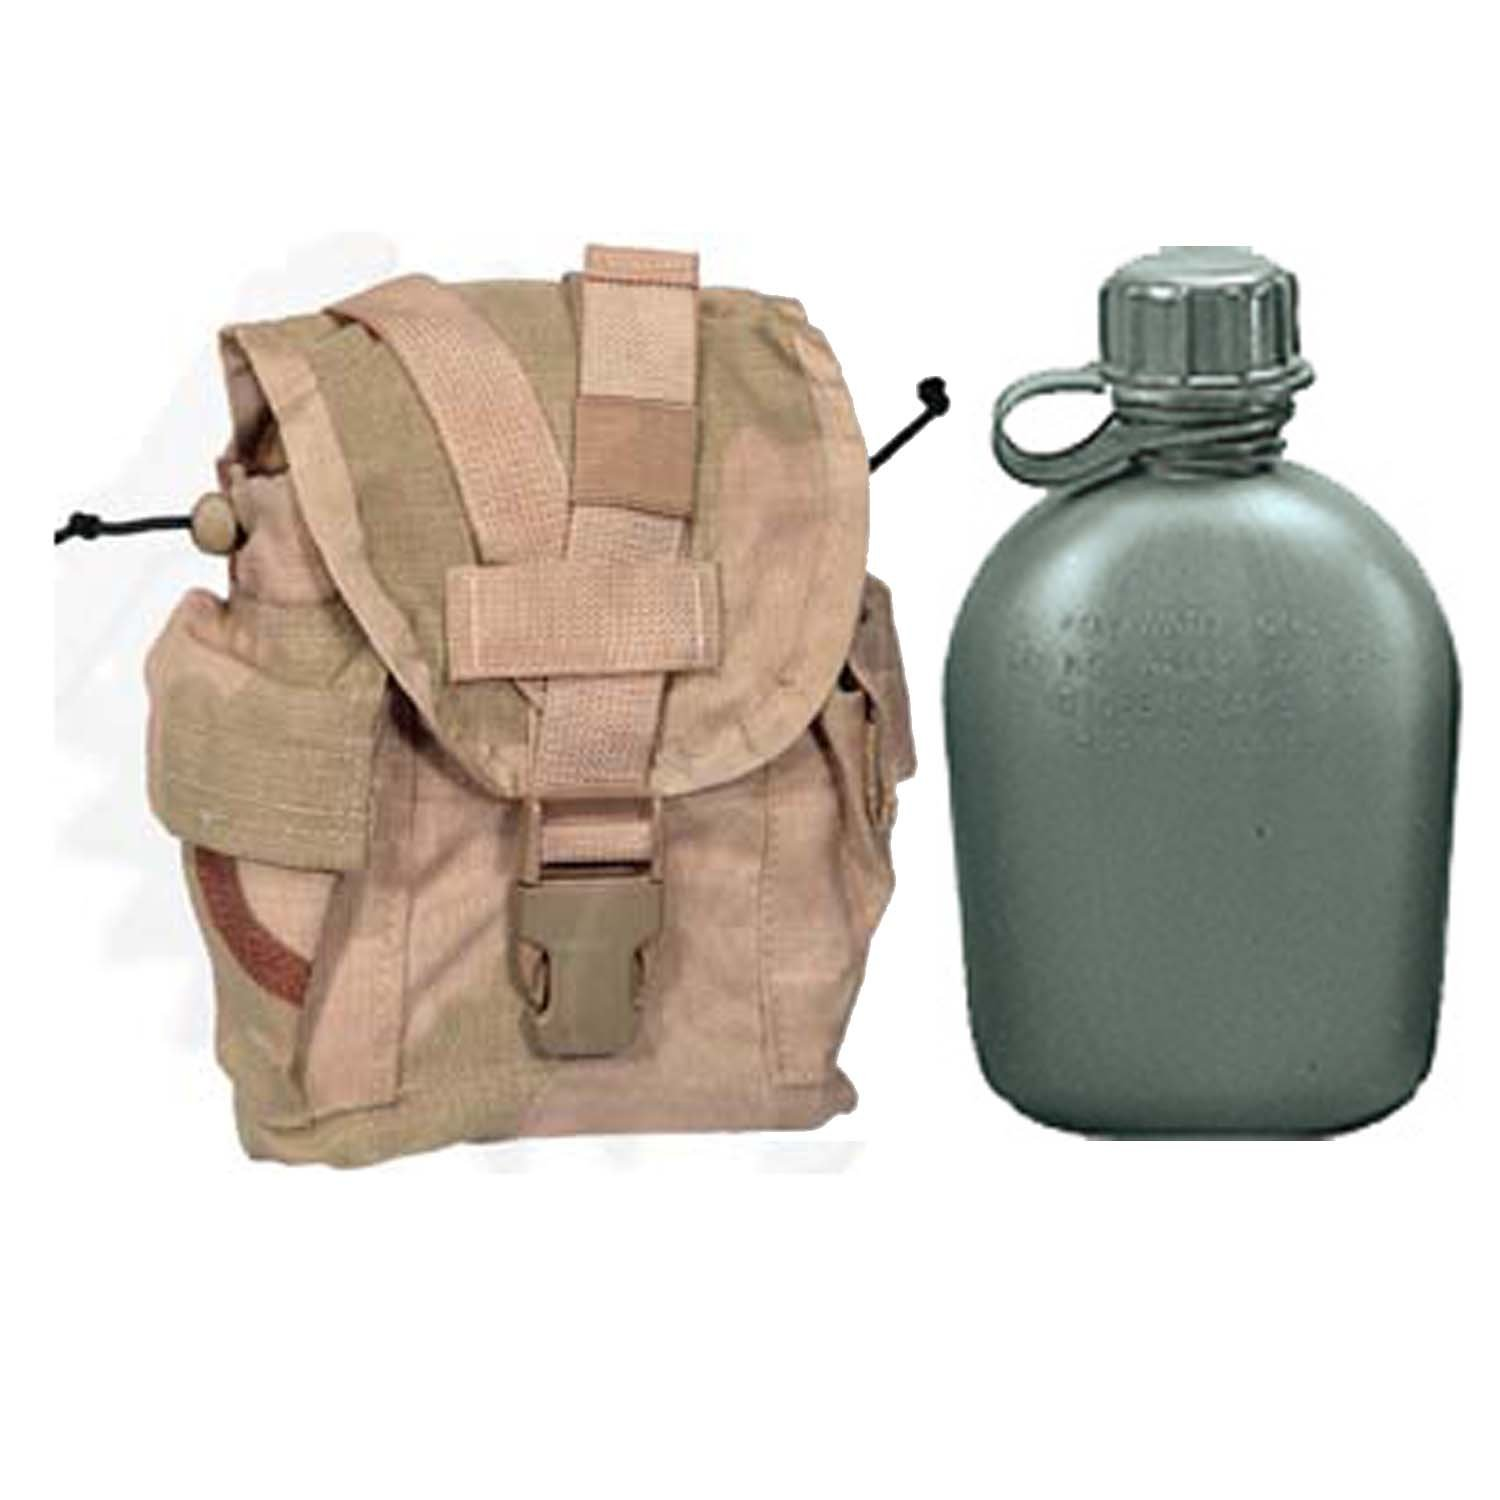 Military Outdoor Clothing Never Issued U.S. G.I. 1 quart Olive Drab Military Canteen with Previously Issued U.S. G.I. 1 quart Desert MOLLE Canteen/General Purpose Pouch